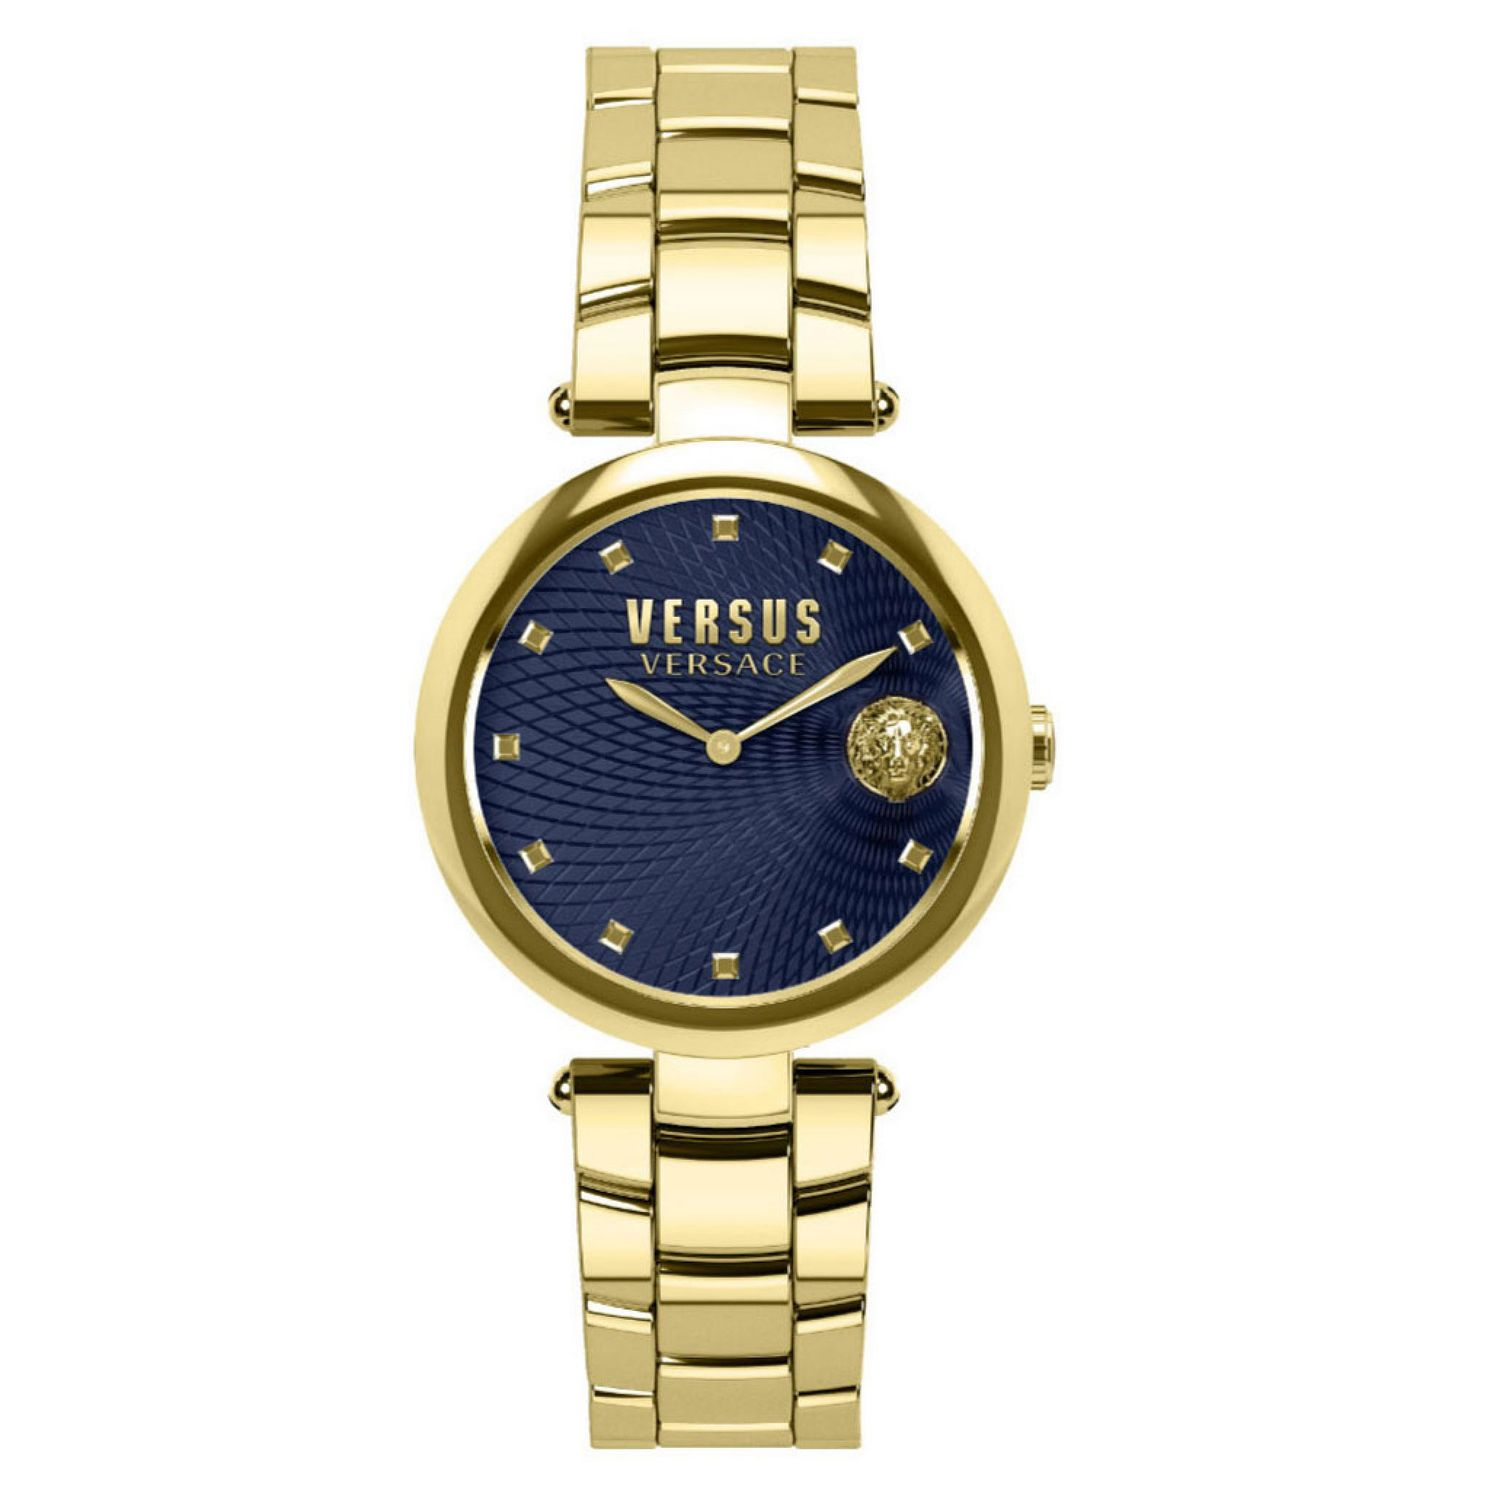 Versus Versace Buffle Bay Gold Plated Bracelet Watch - Product number 8050430